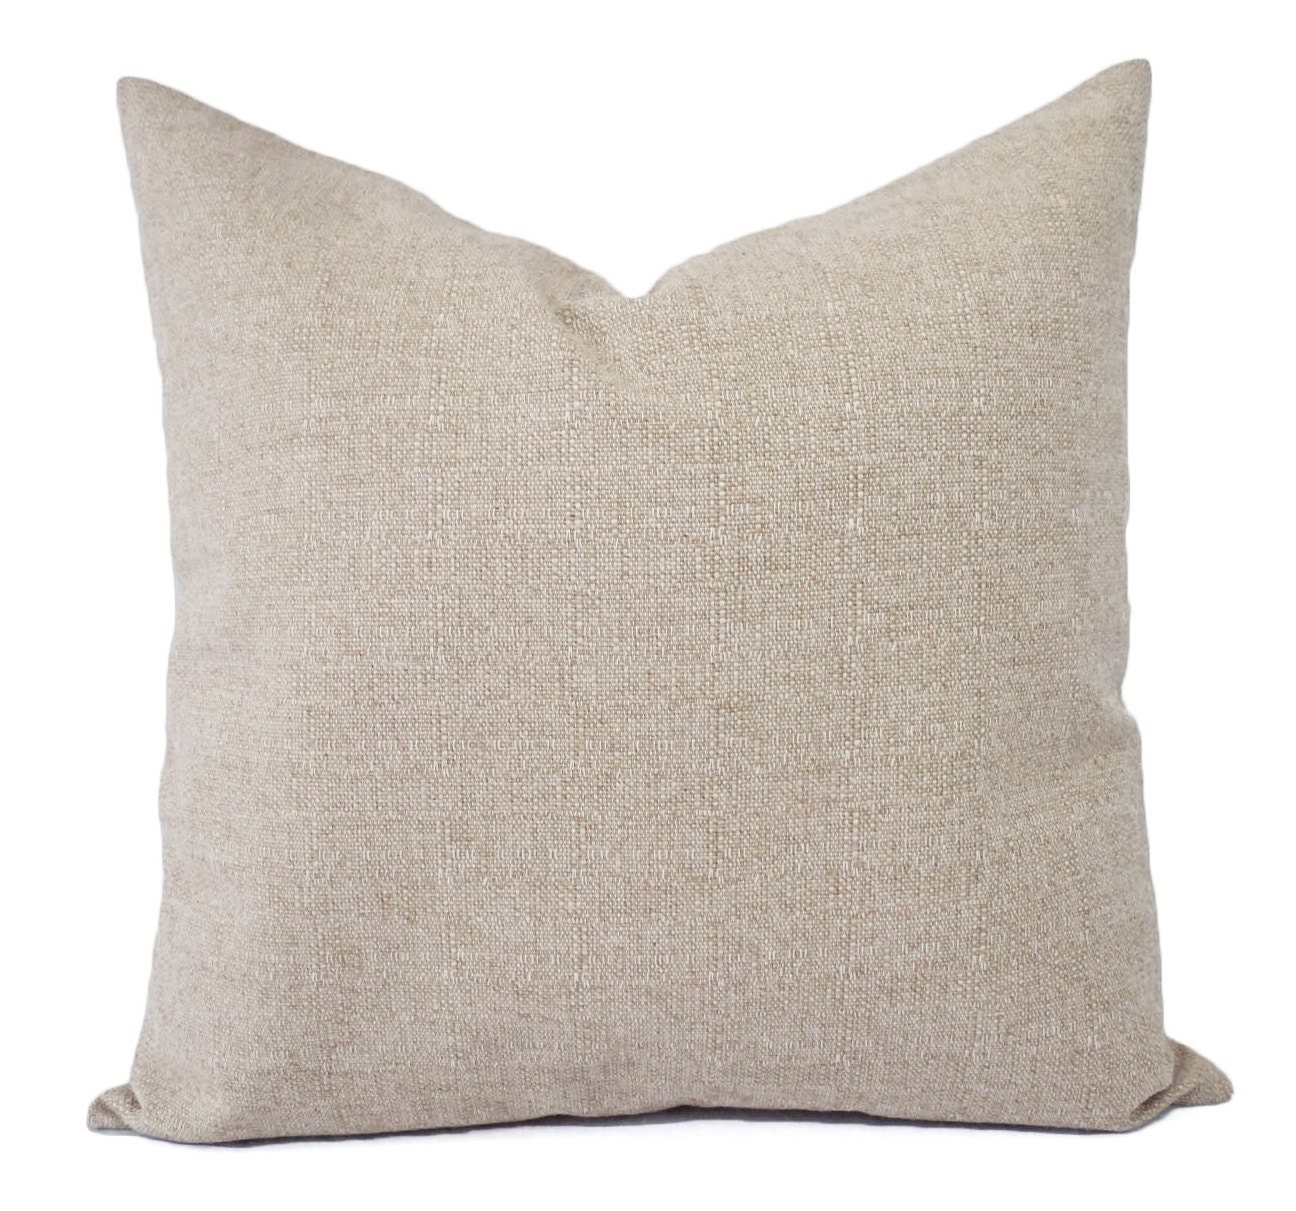 Two Burlap Decorative Throw Pillow Covers Solid Cream